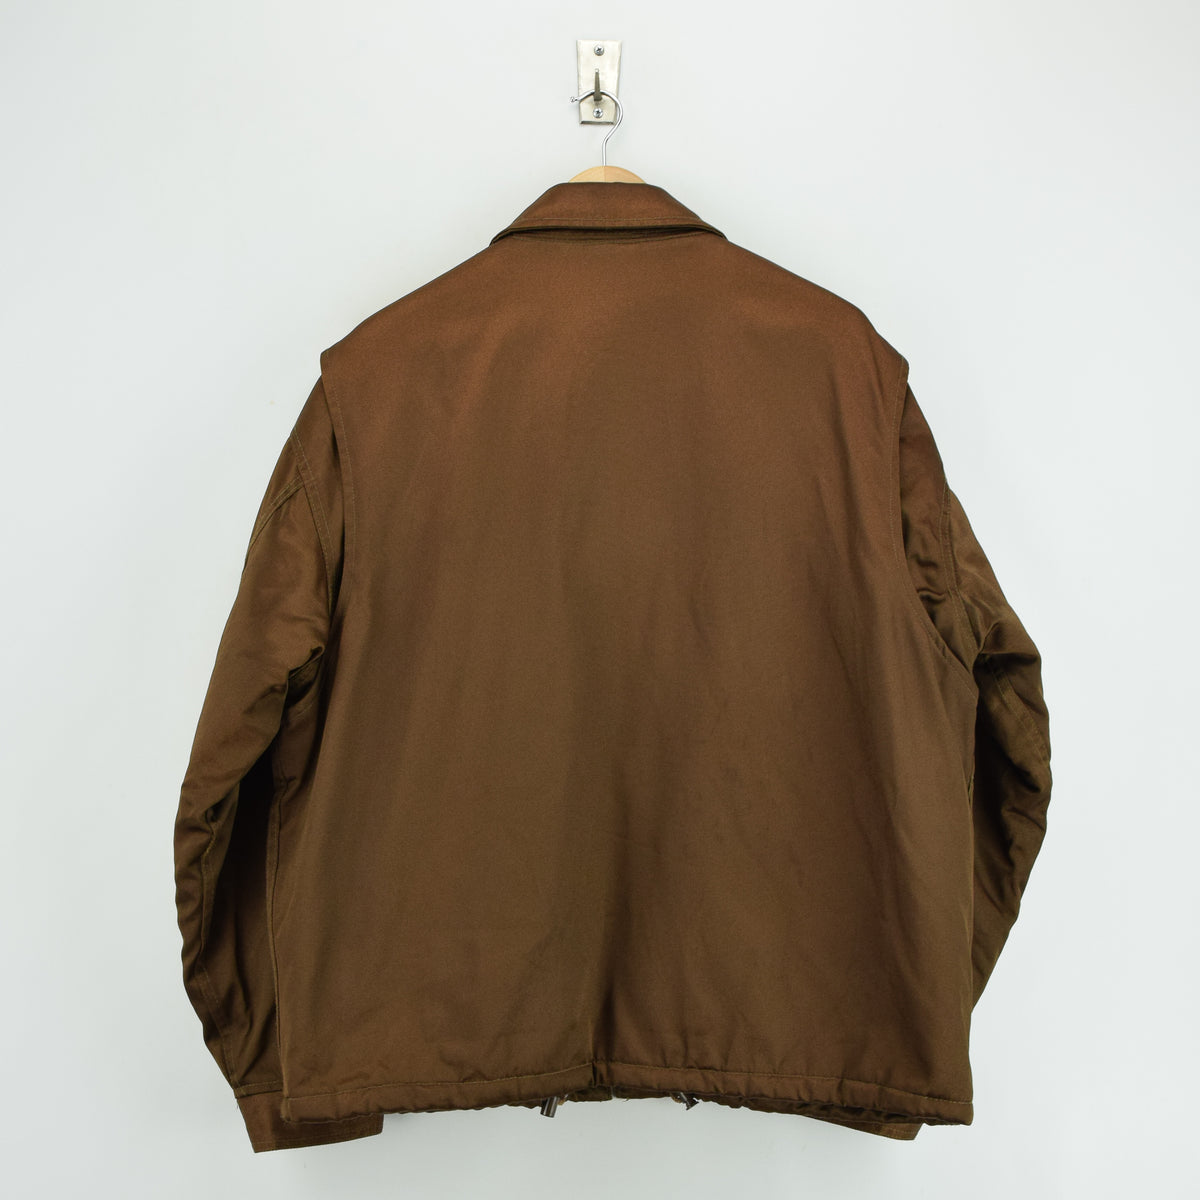 Vintage Schott NYC Men's Security Bronze Brown Bomber Jacket XL / XXL back